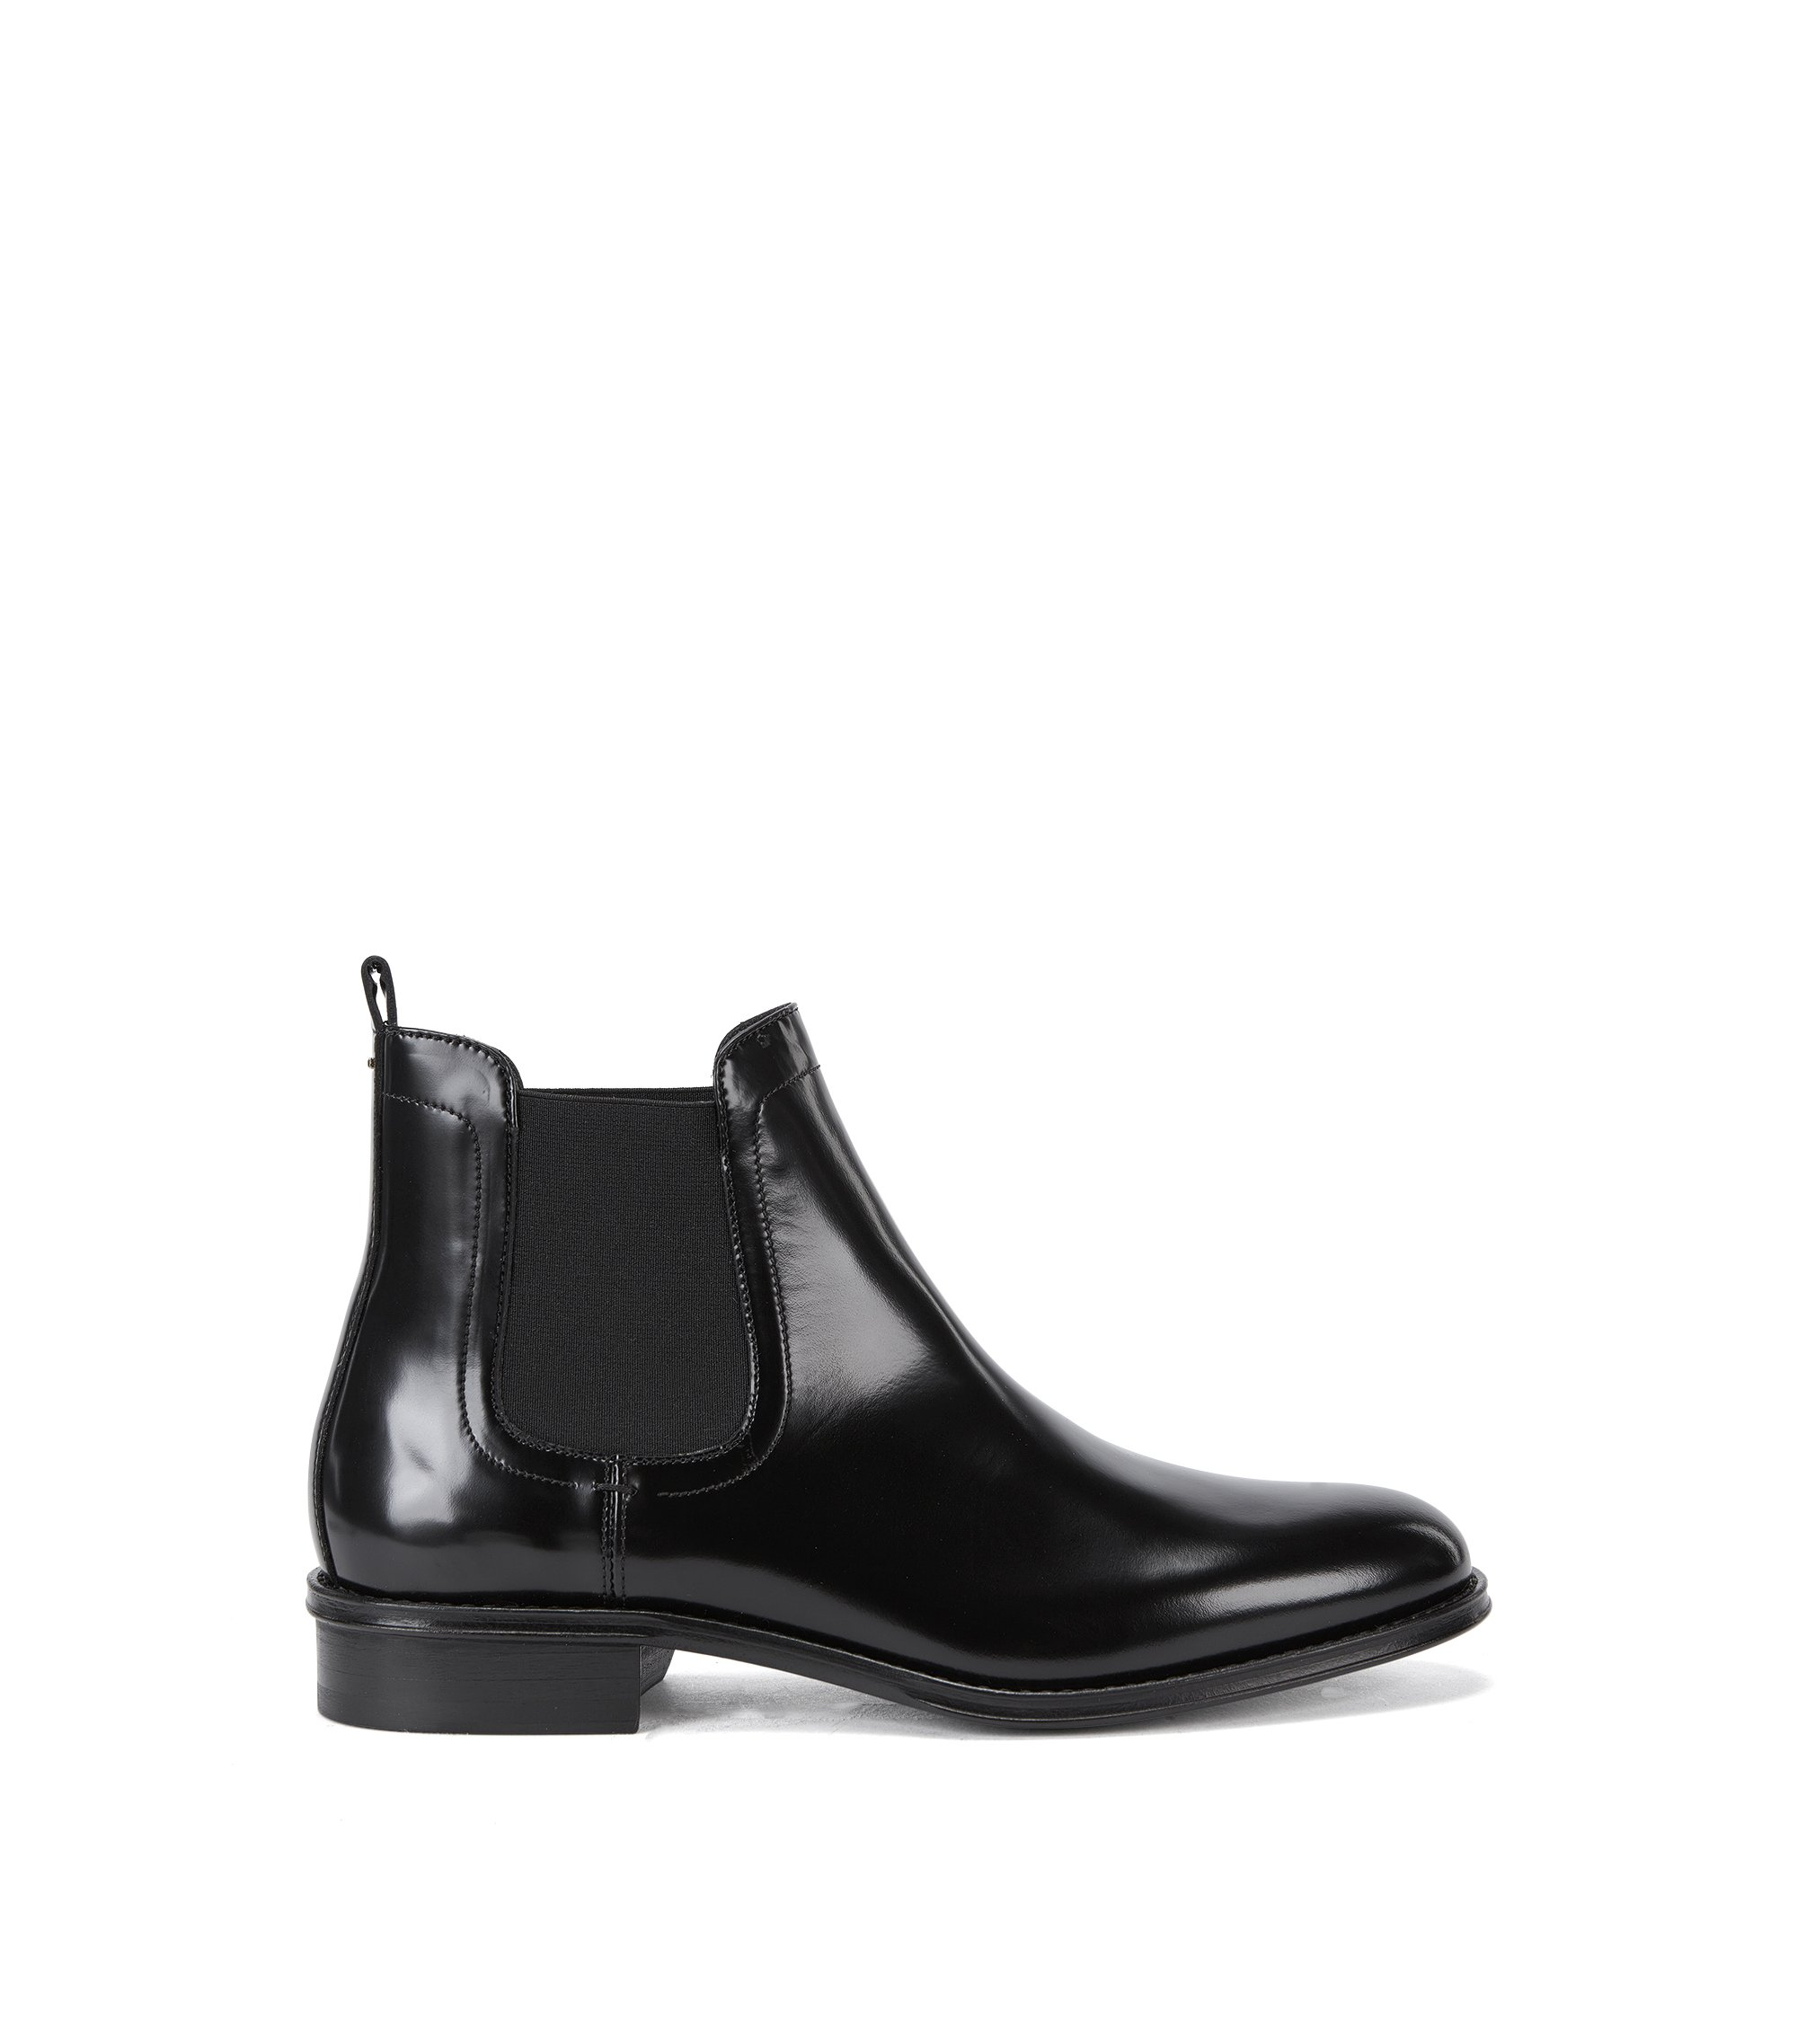 Bottines Chelsea contemporaines en cuir italien, Noir